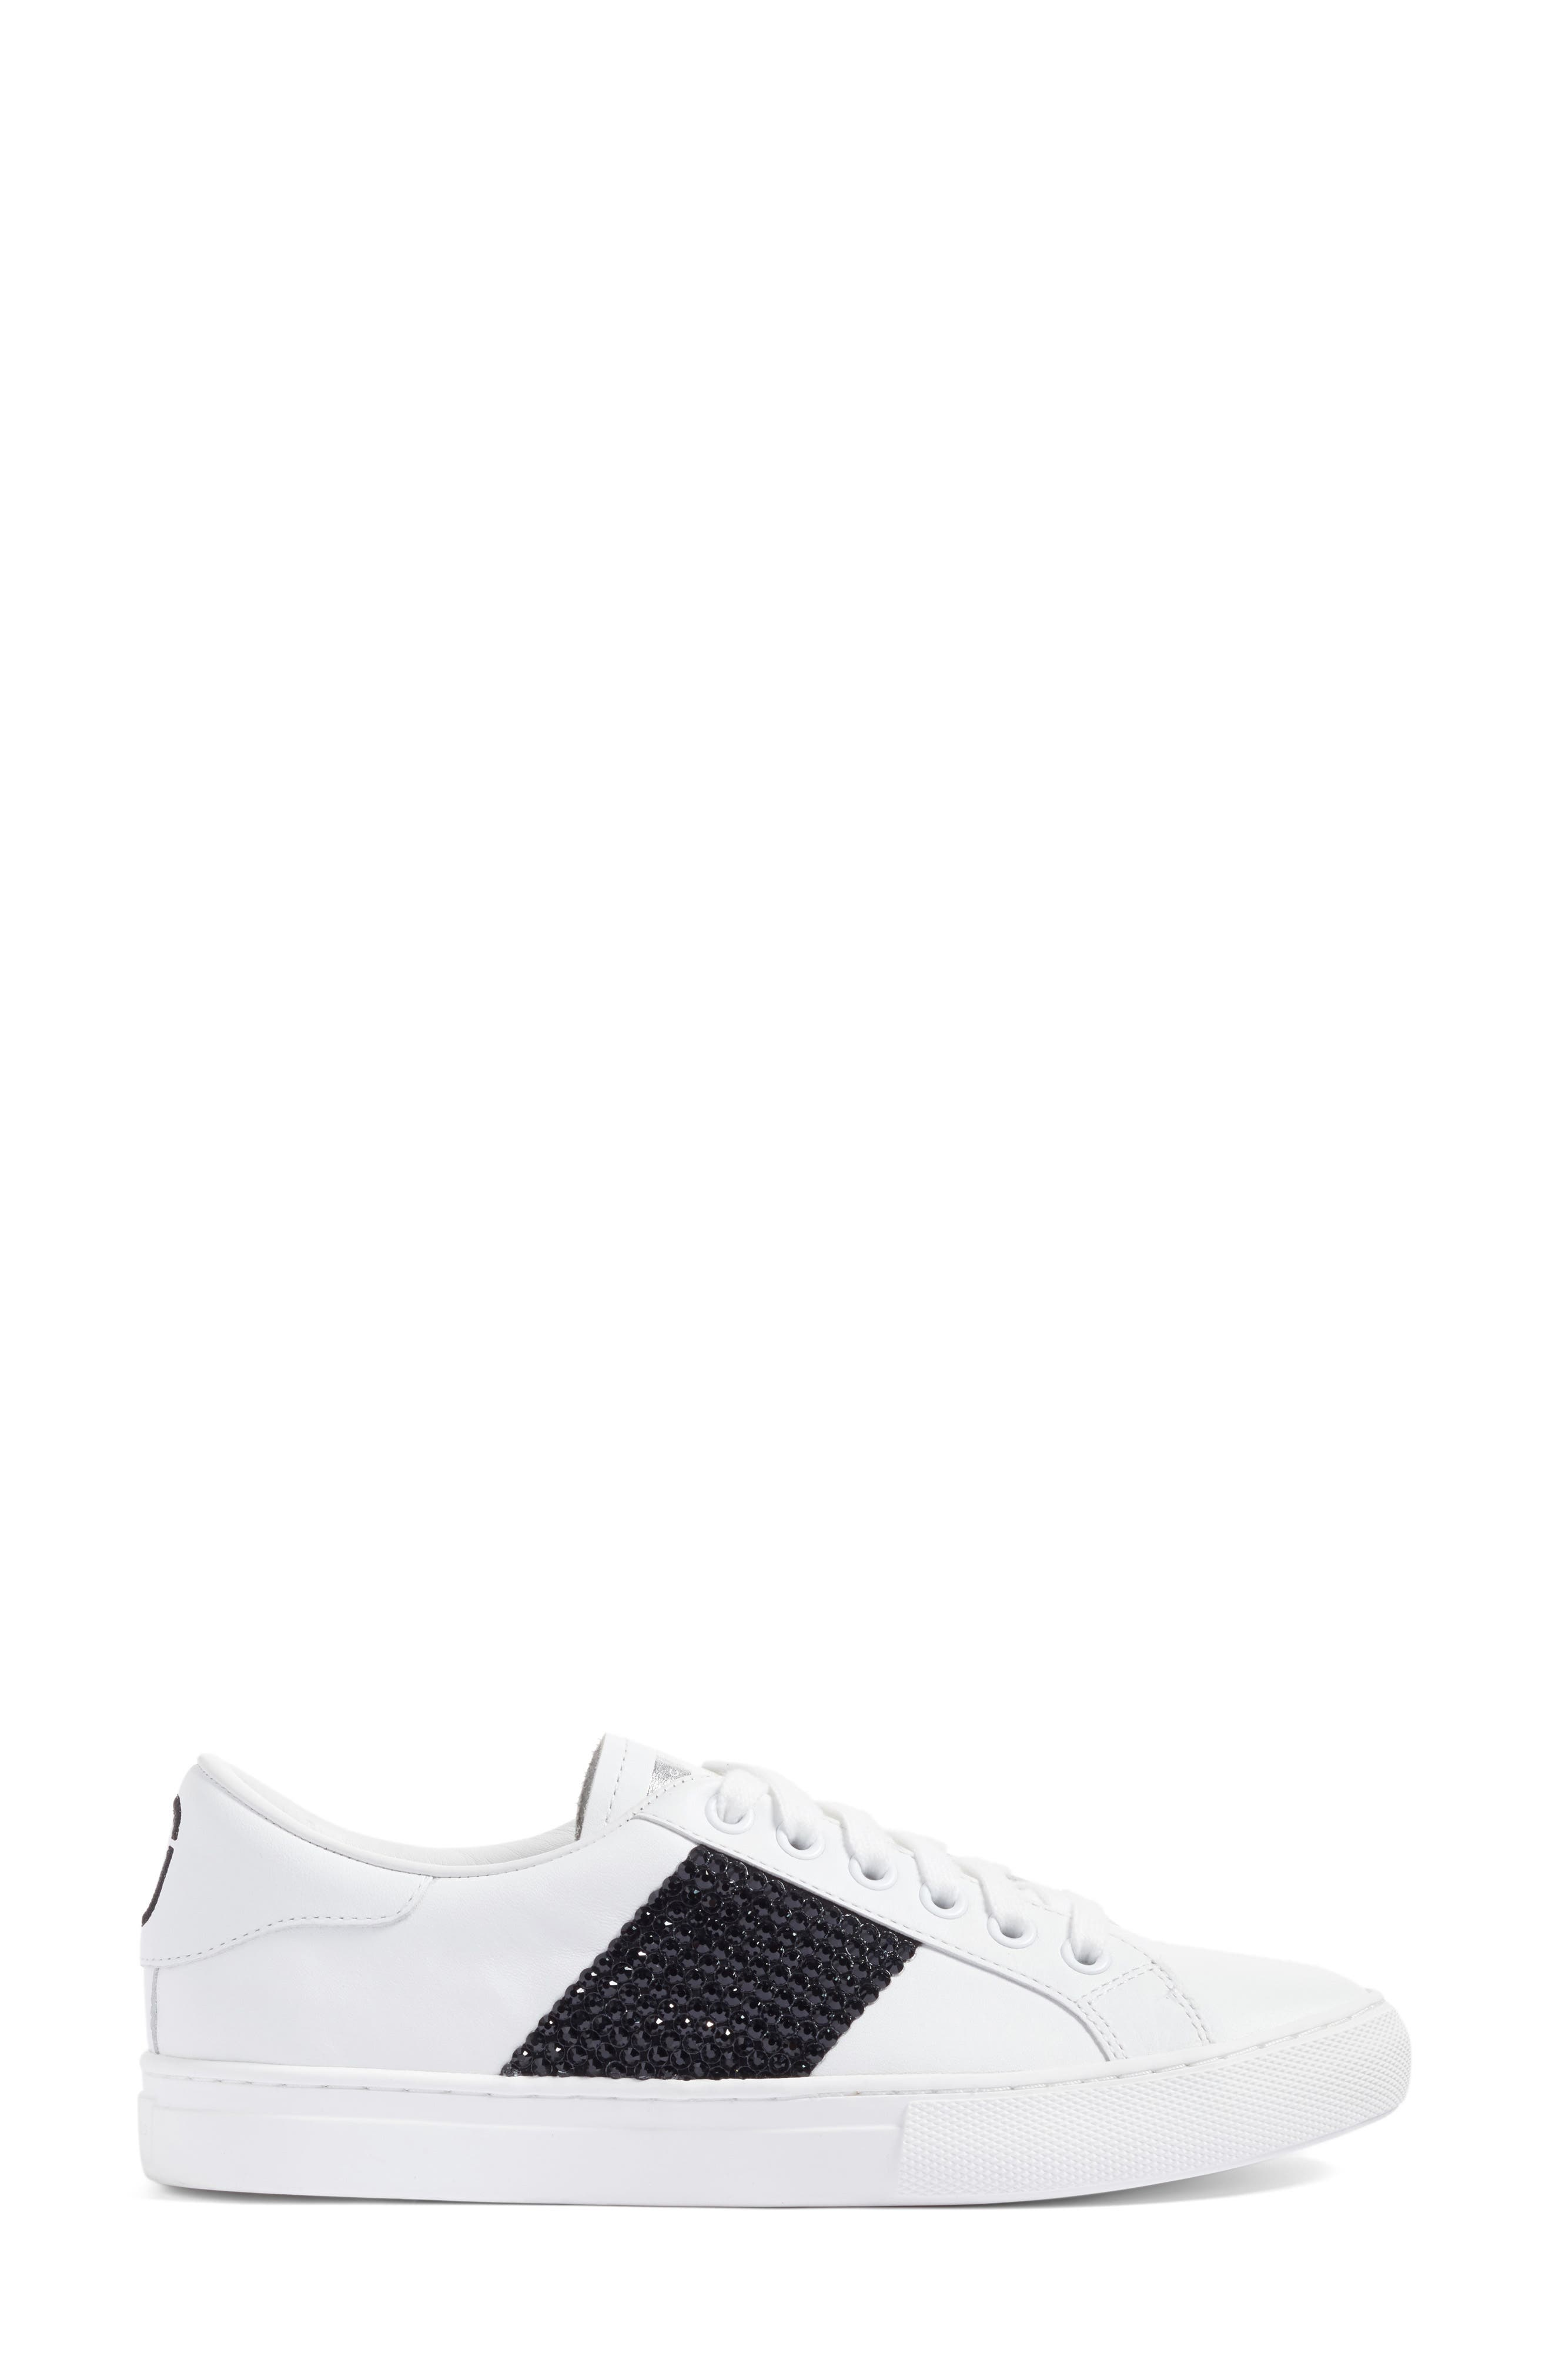 Alternate Image 3  - MARC JACOBS Empire Embellished Sneaker (Women)